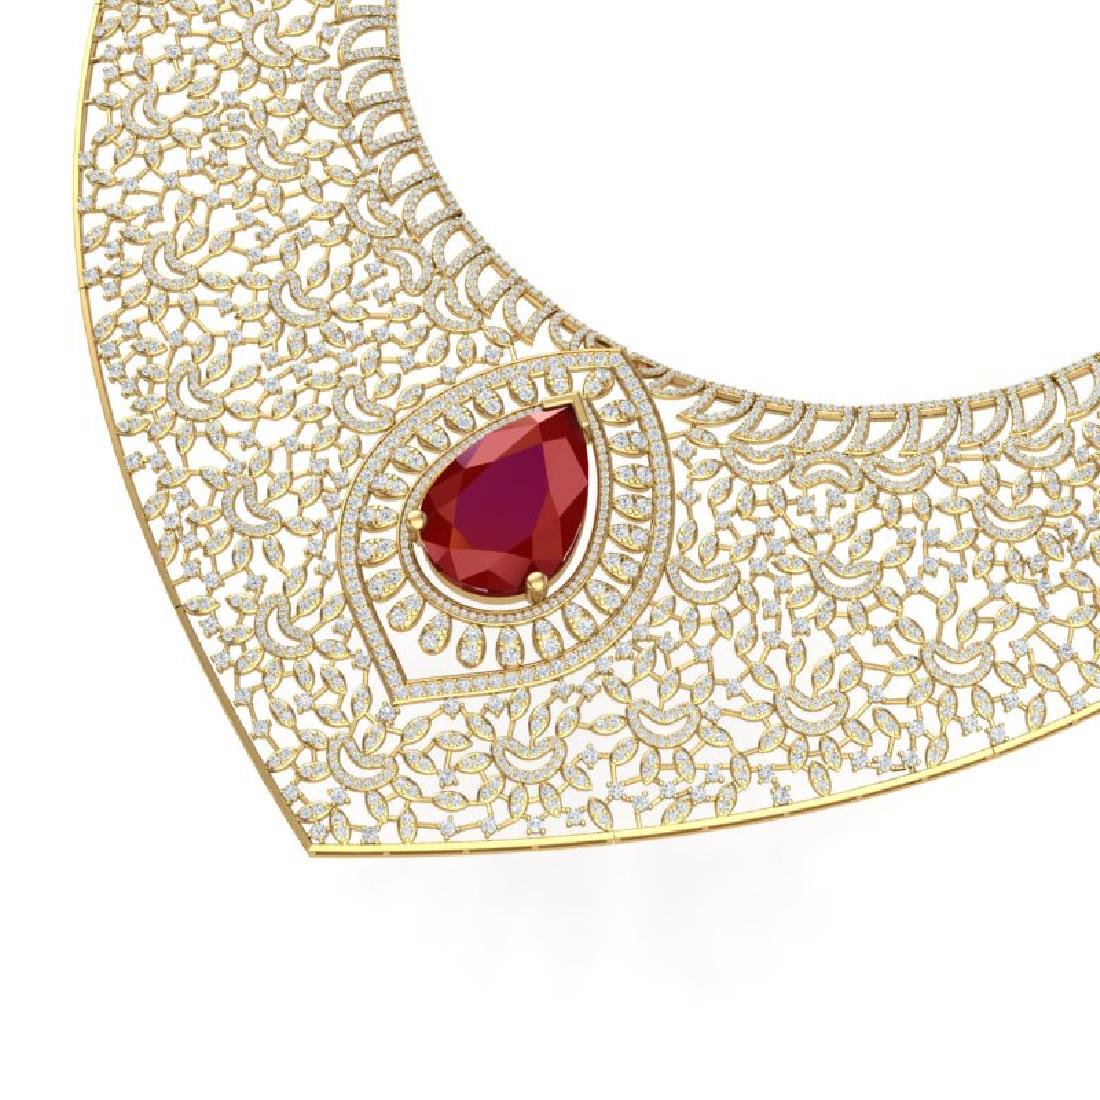 63.93 CTW Royalty Ruby & VS Diamond Necklace 18K Yellow